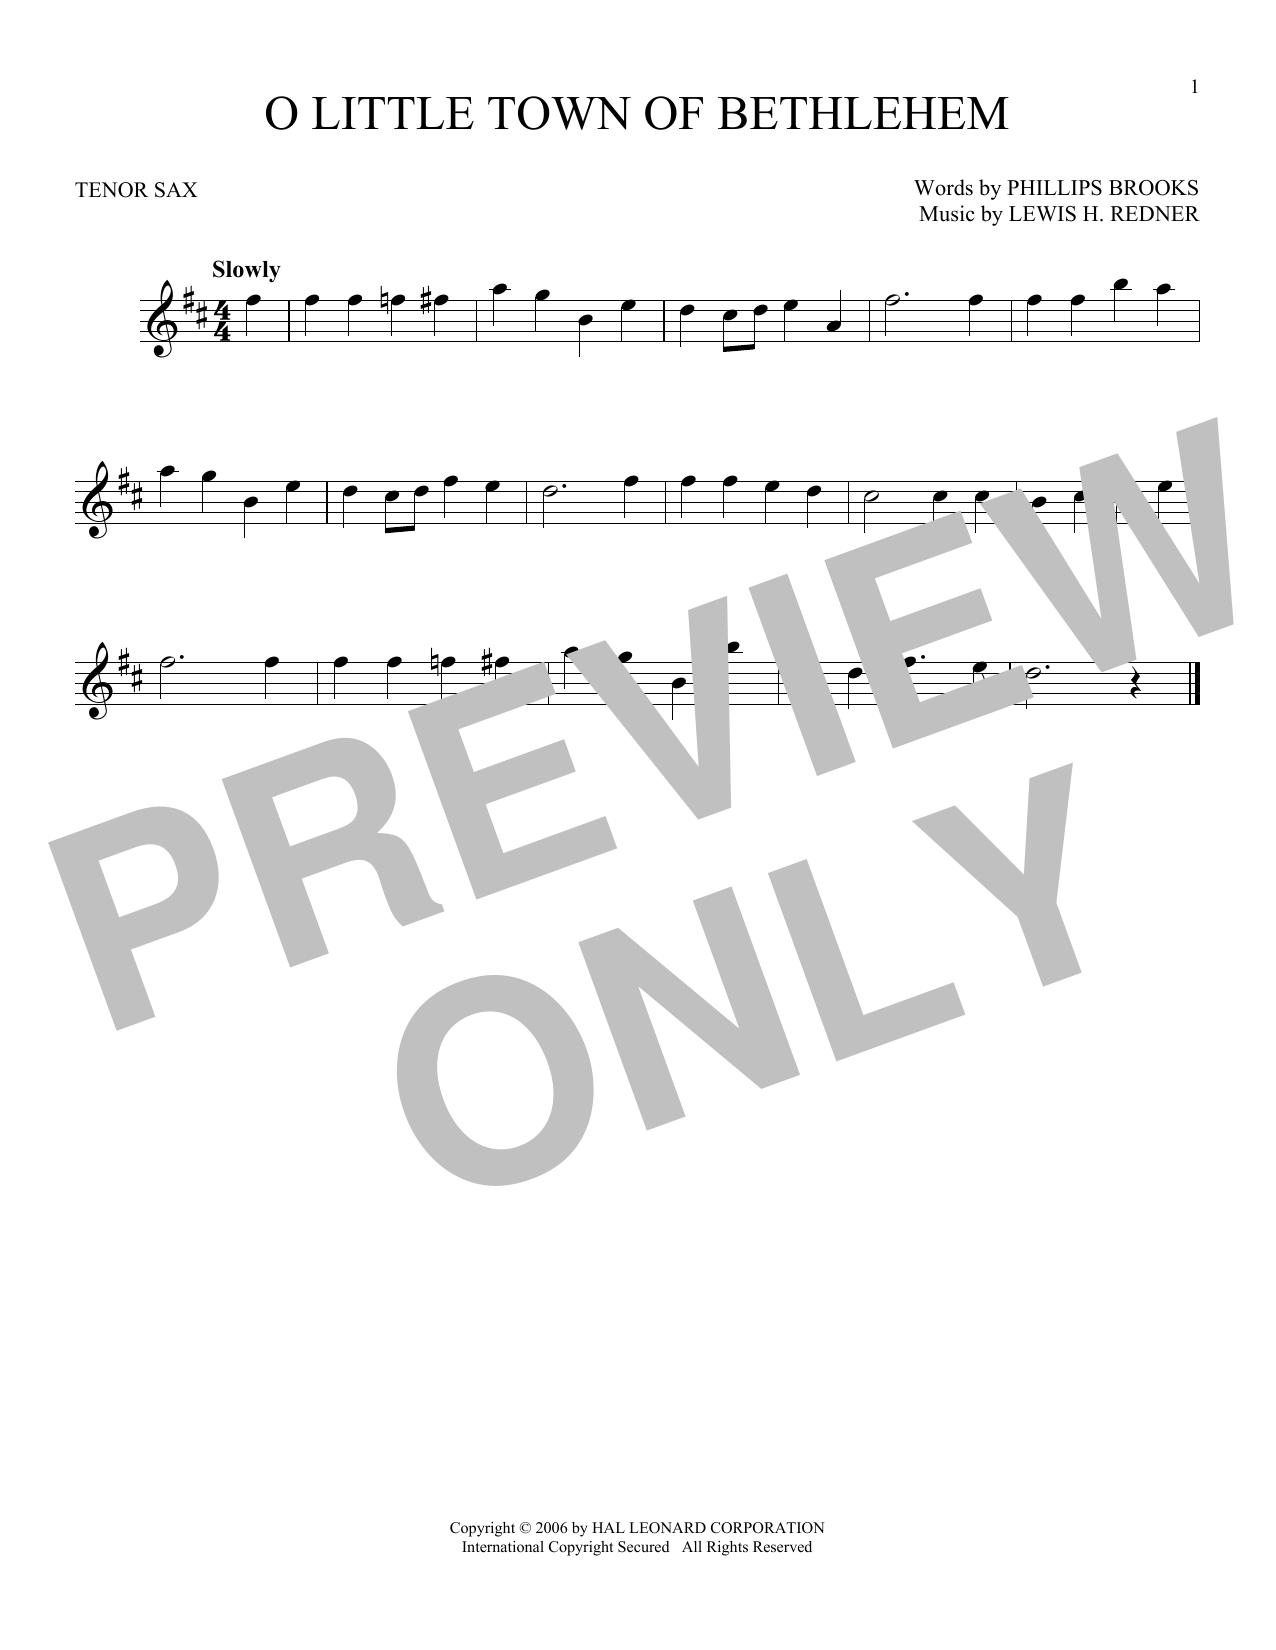 Partition saxophone O Little Town Of Bethlehem de Phillips Brooks - Sax Tenor